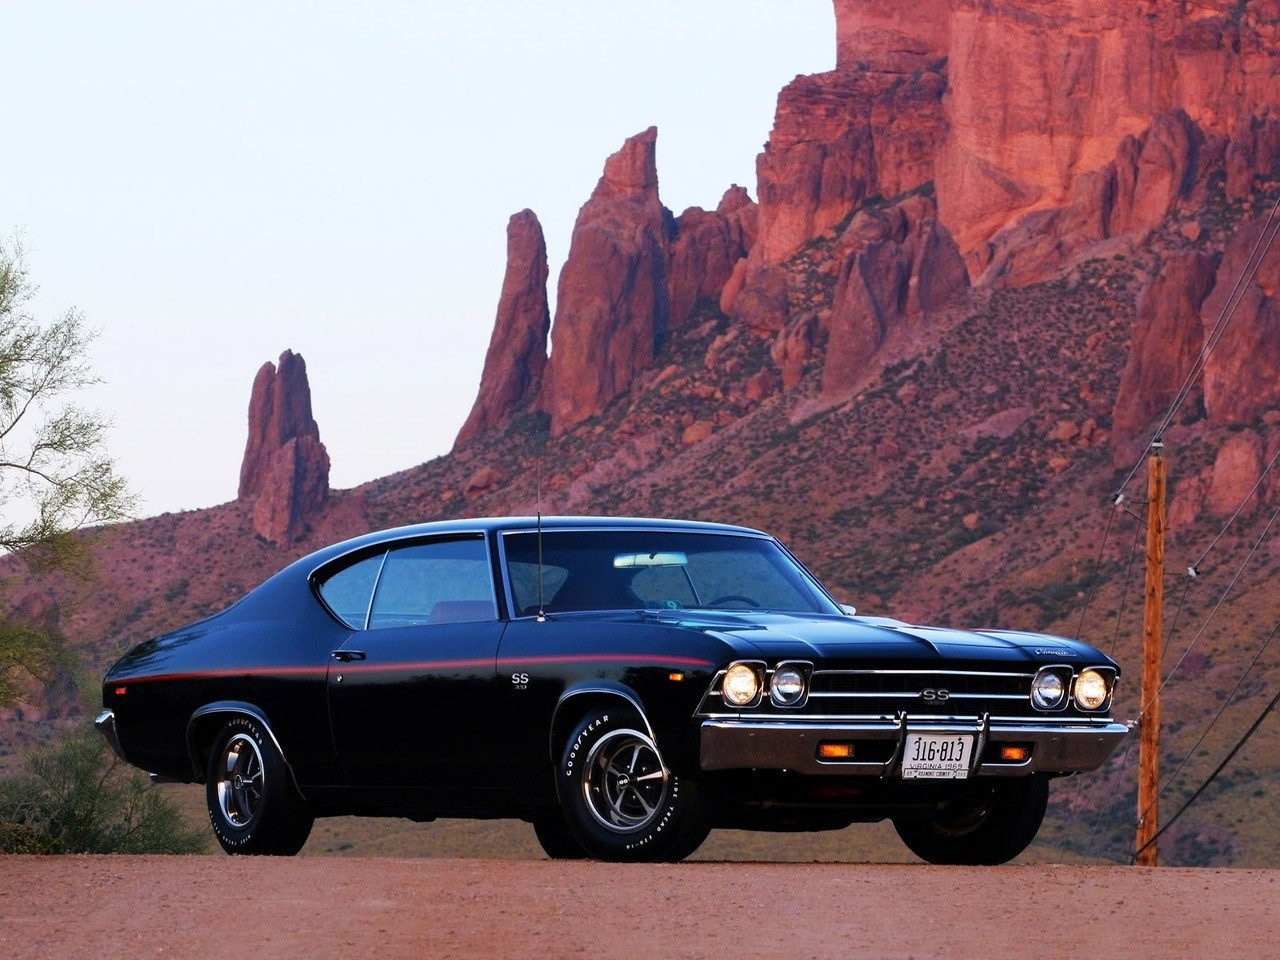 rocks muscle cars vehicles HD Wallpaper